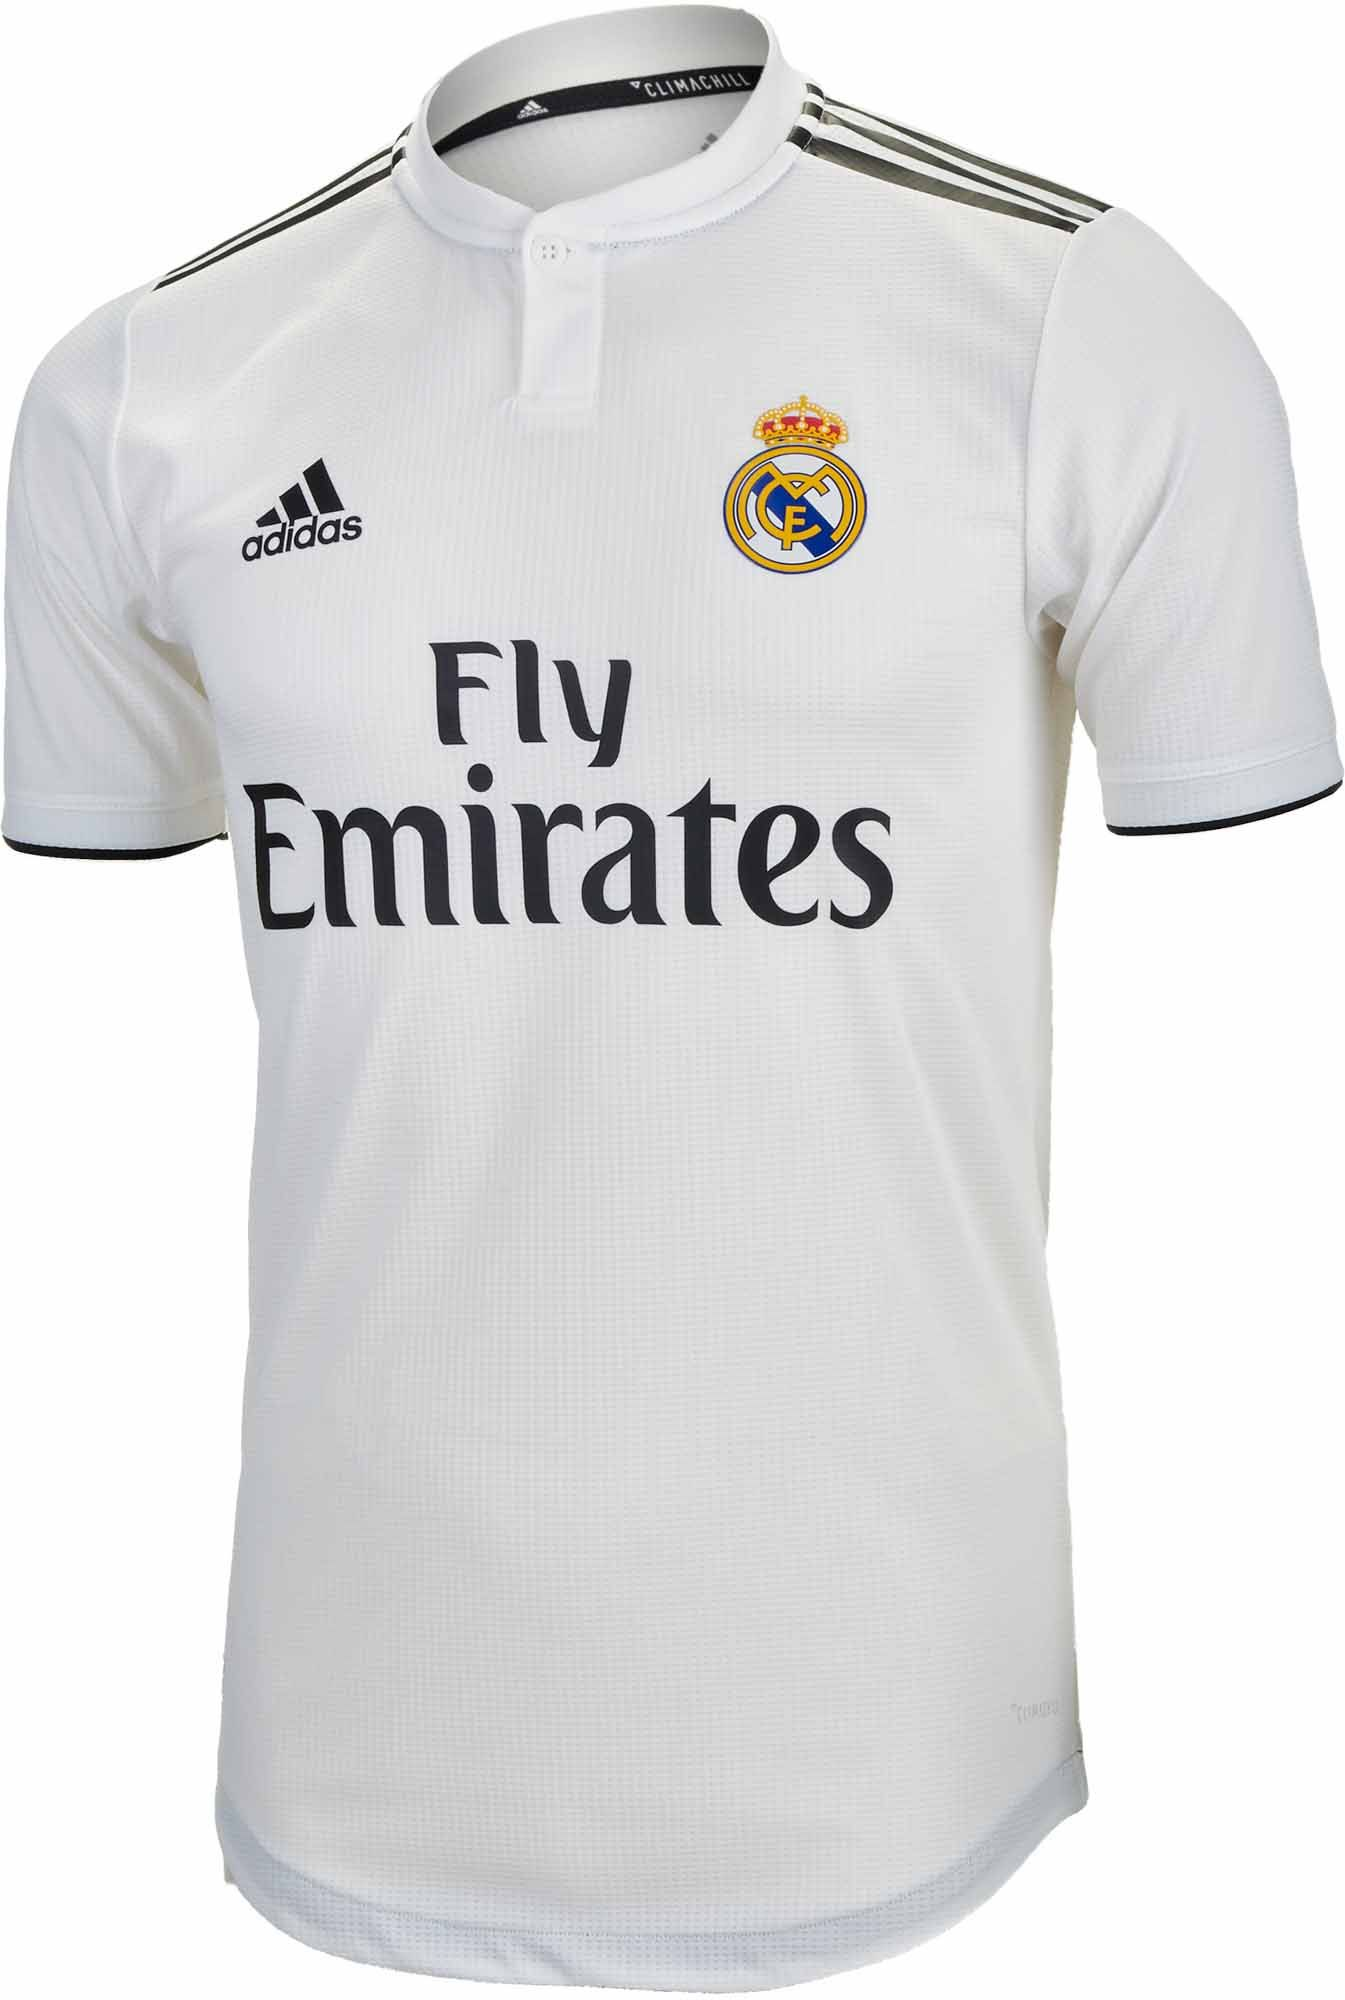 edf02ed4c Buy the adidas Real Madrid Home Authentic Jersey 2018-19 and rock these  sweet threads all season long in support of Los Blancos!